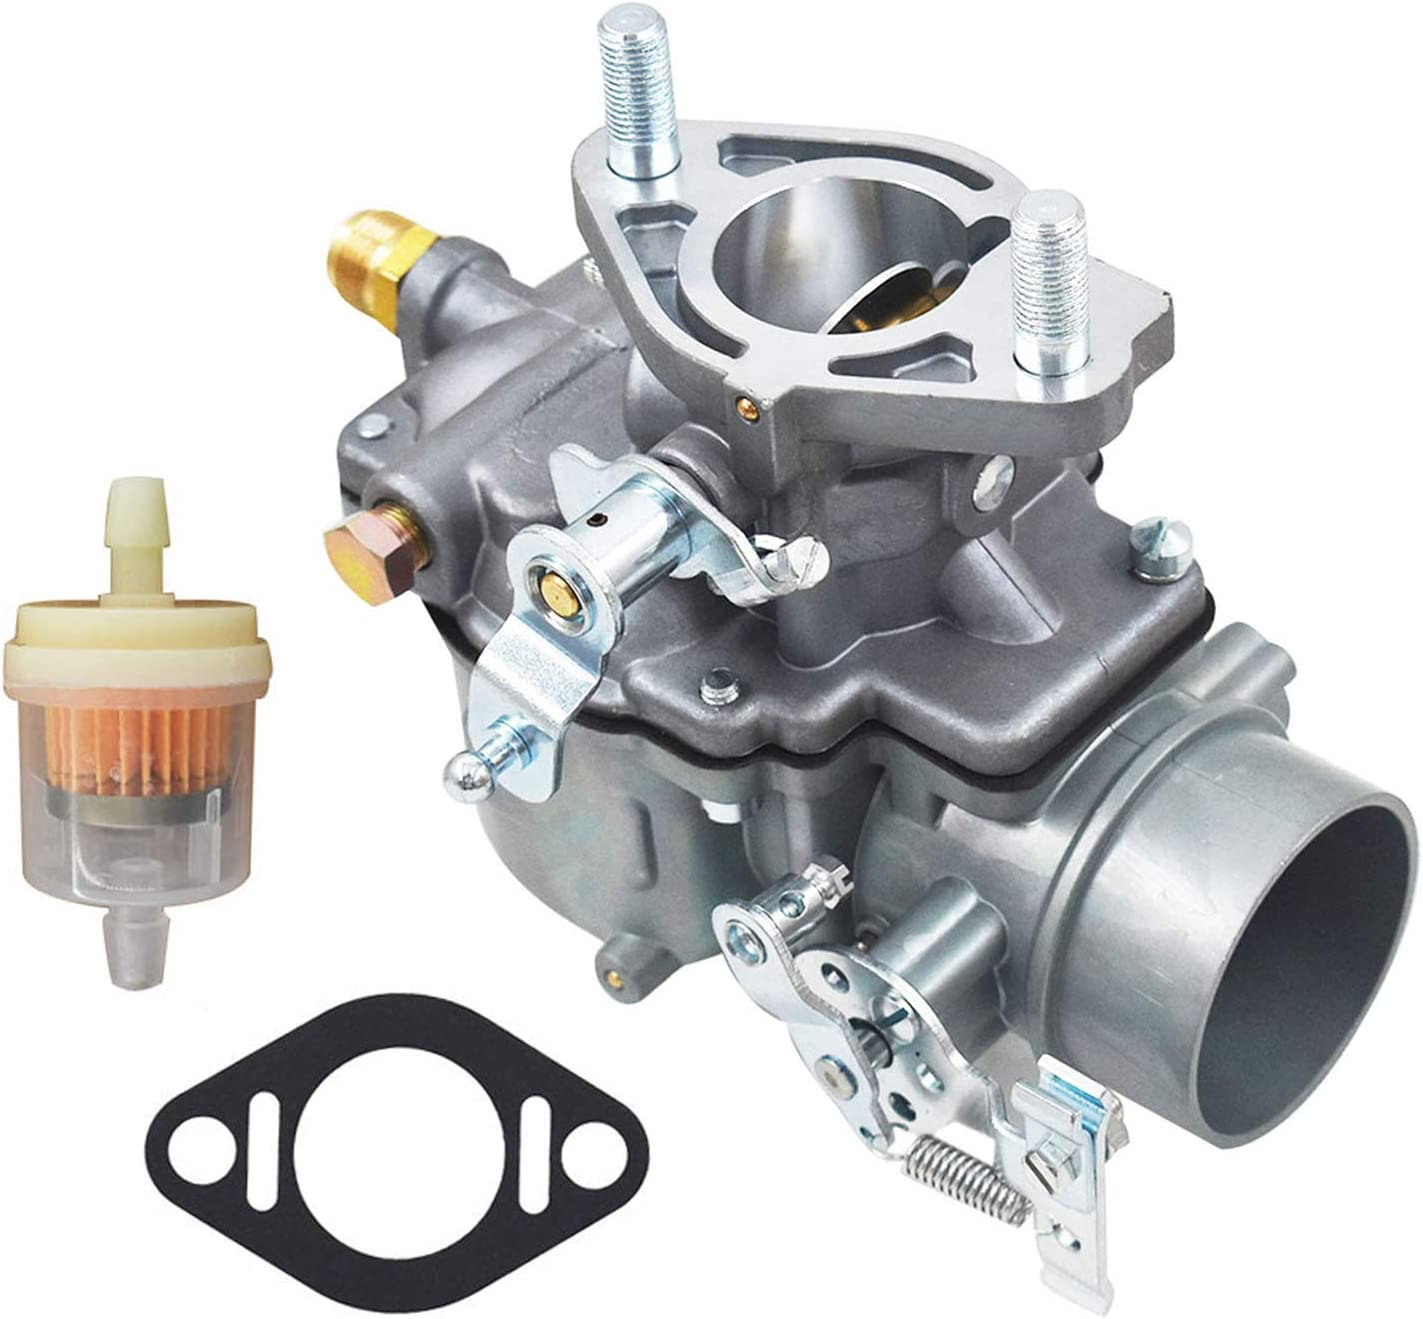 Autoparts Total Power Parts Carburetor 1103-0004 Replacement for Ford/New Holland Tractor 3000 Series 3 Cyl 1965-1974 3055 13916 C5NE9510C C5NN9510M C7NN9510C